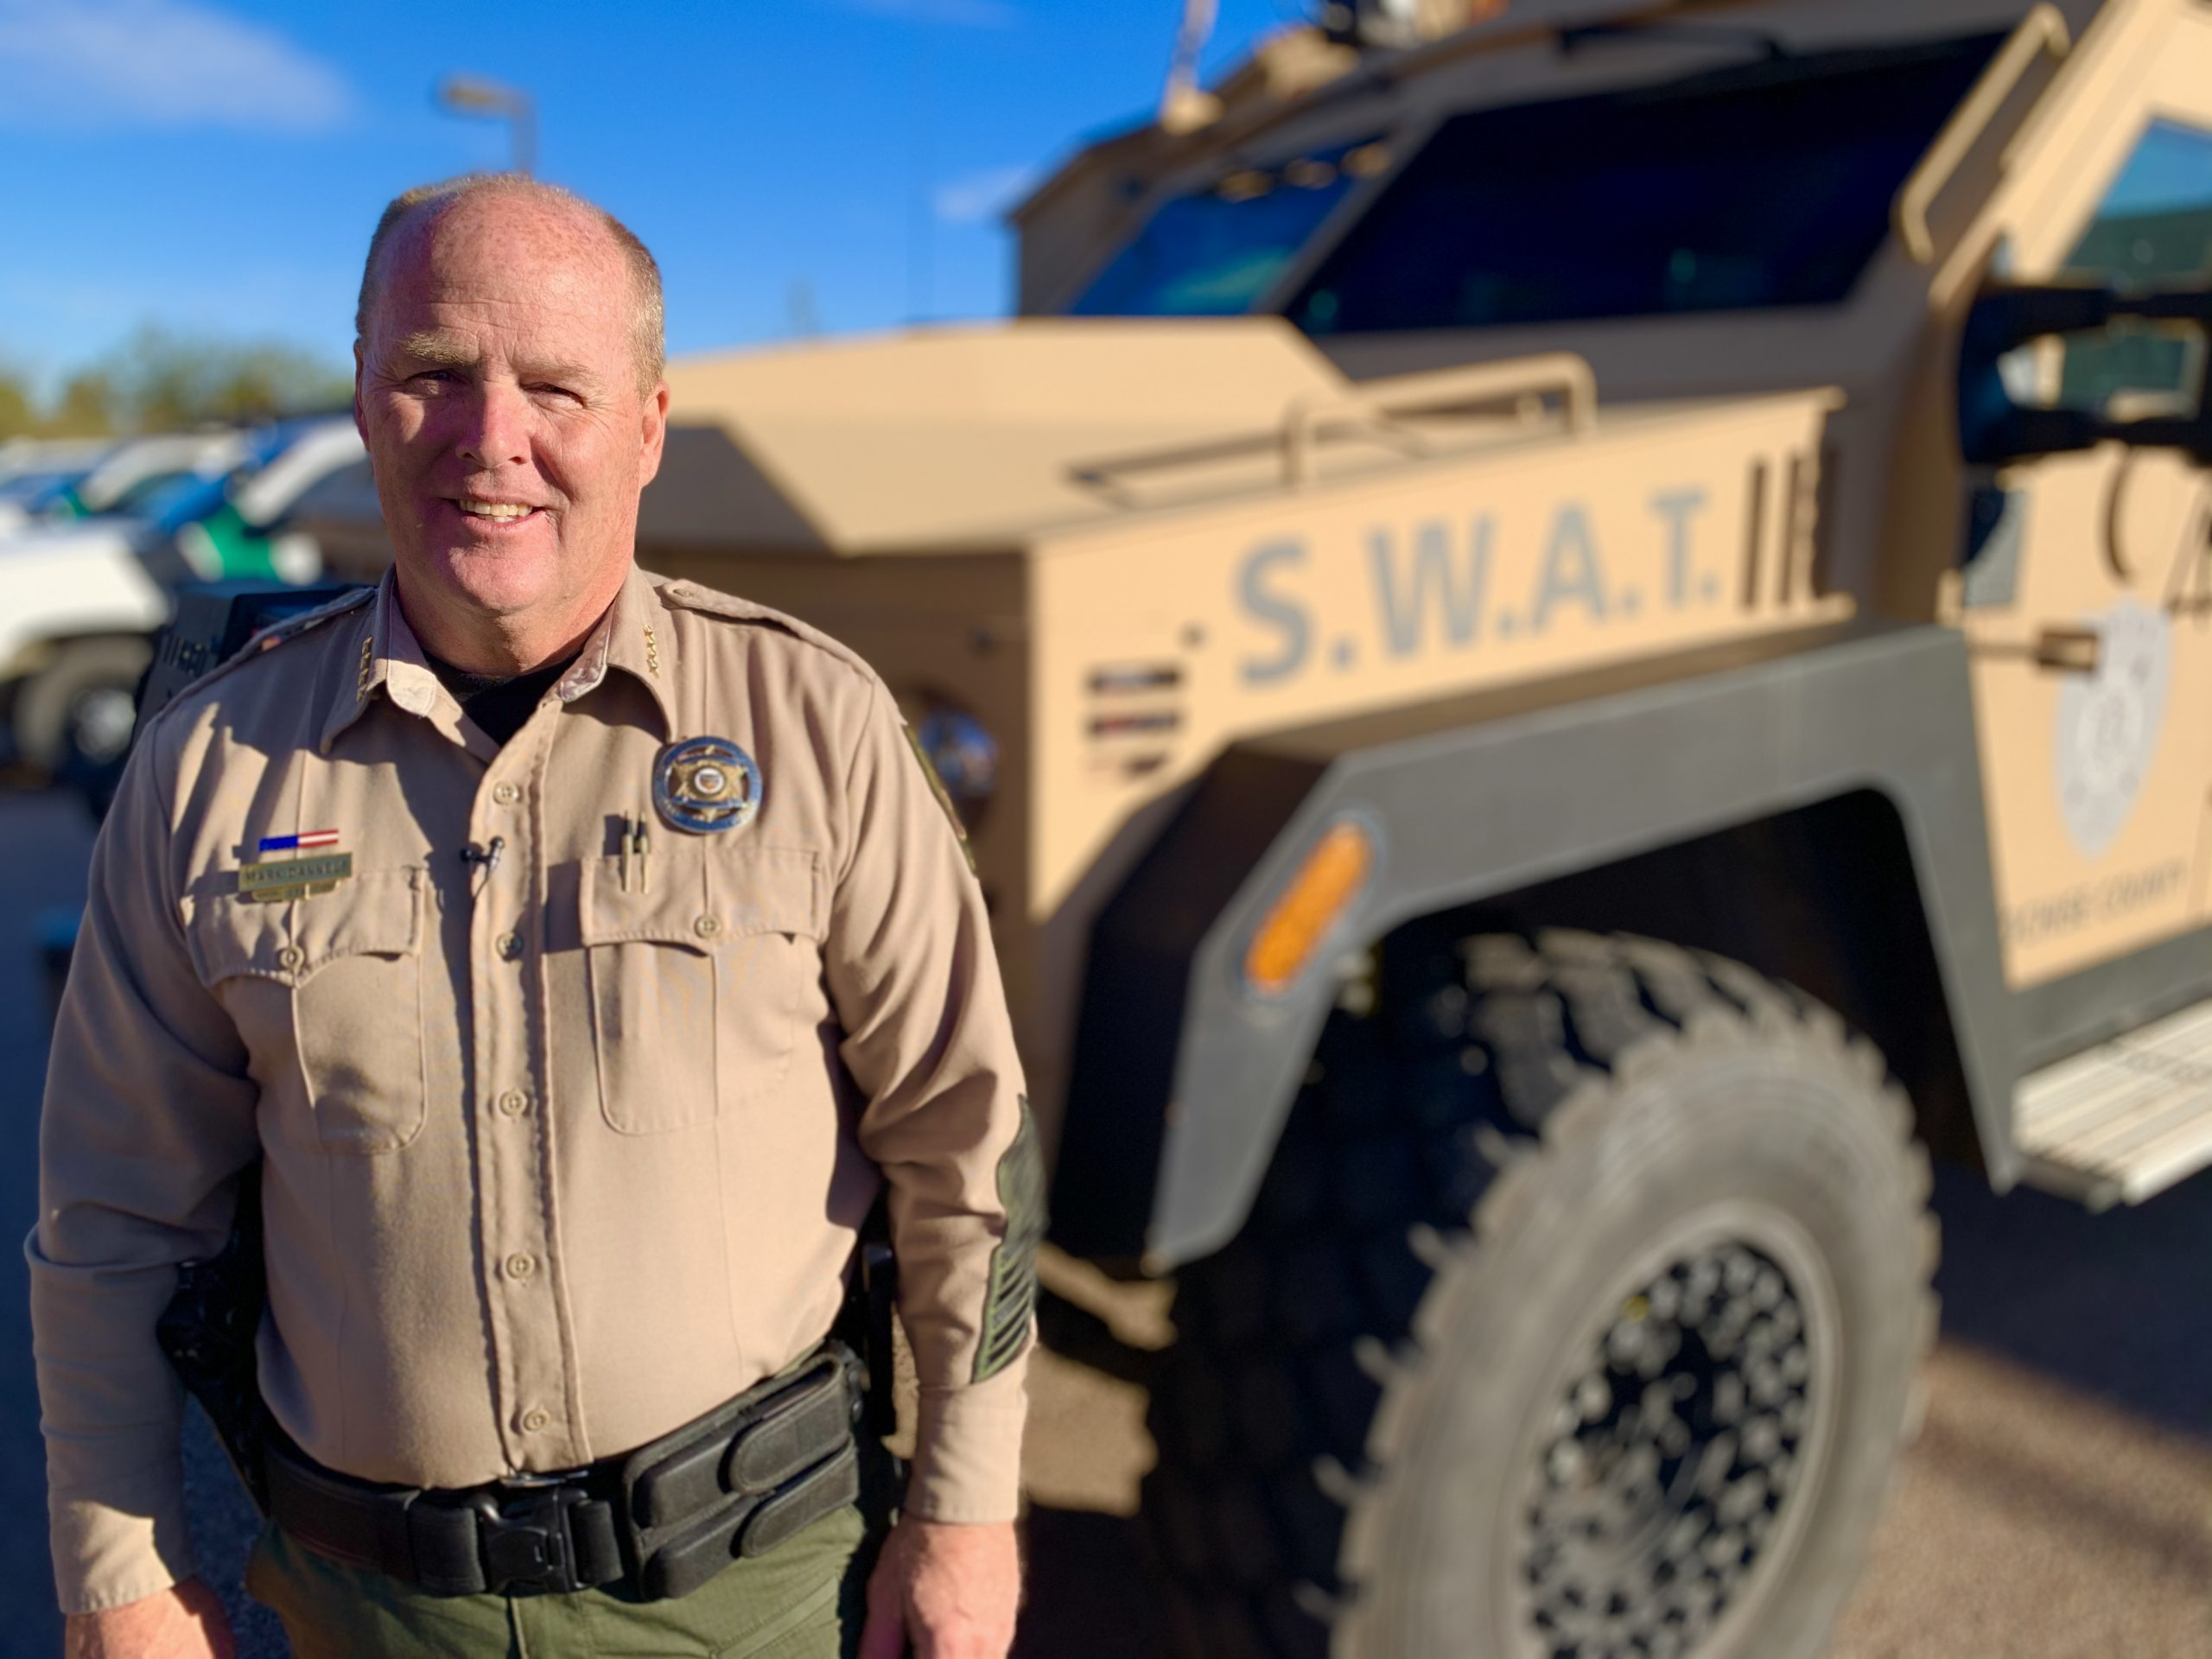 Sheriff Dannels on protecting the people of Arizona